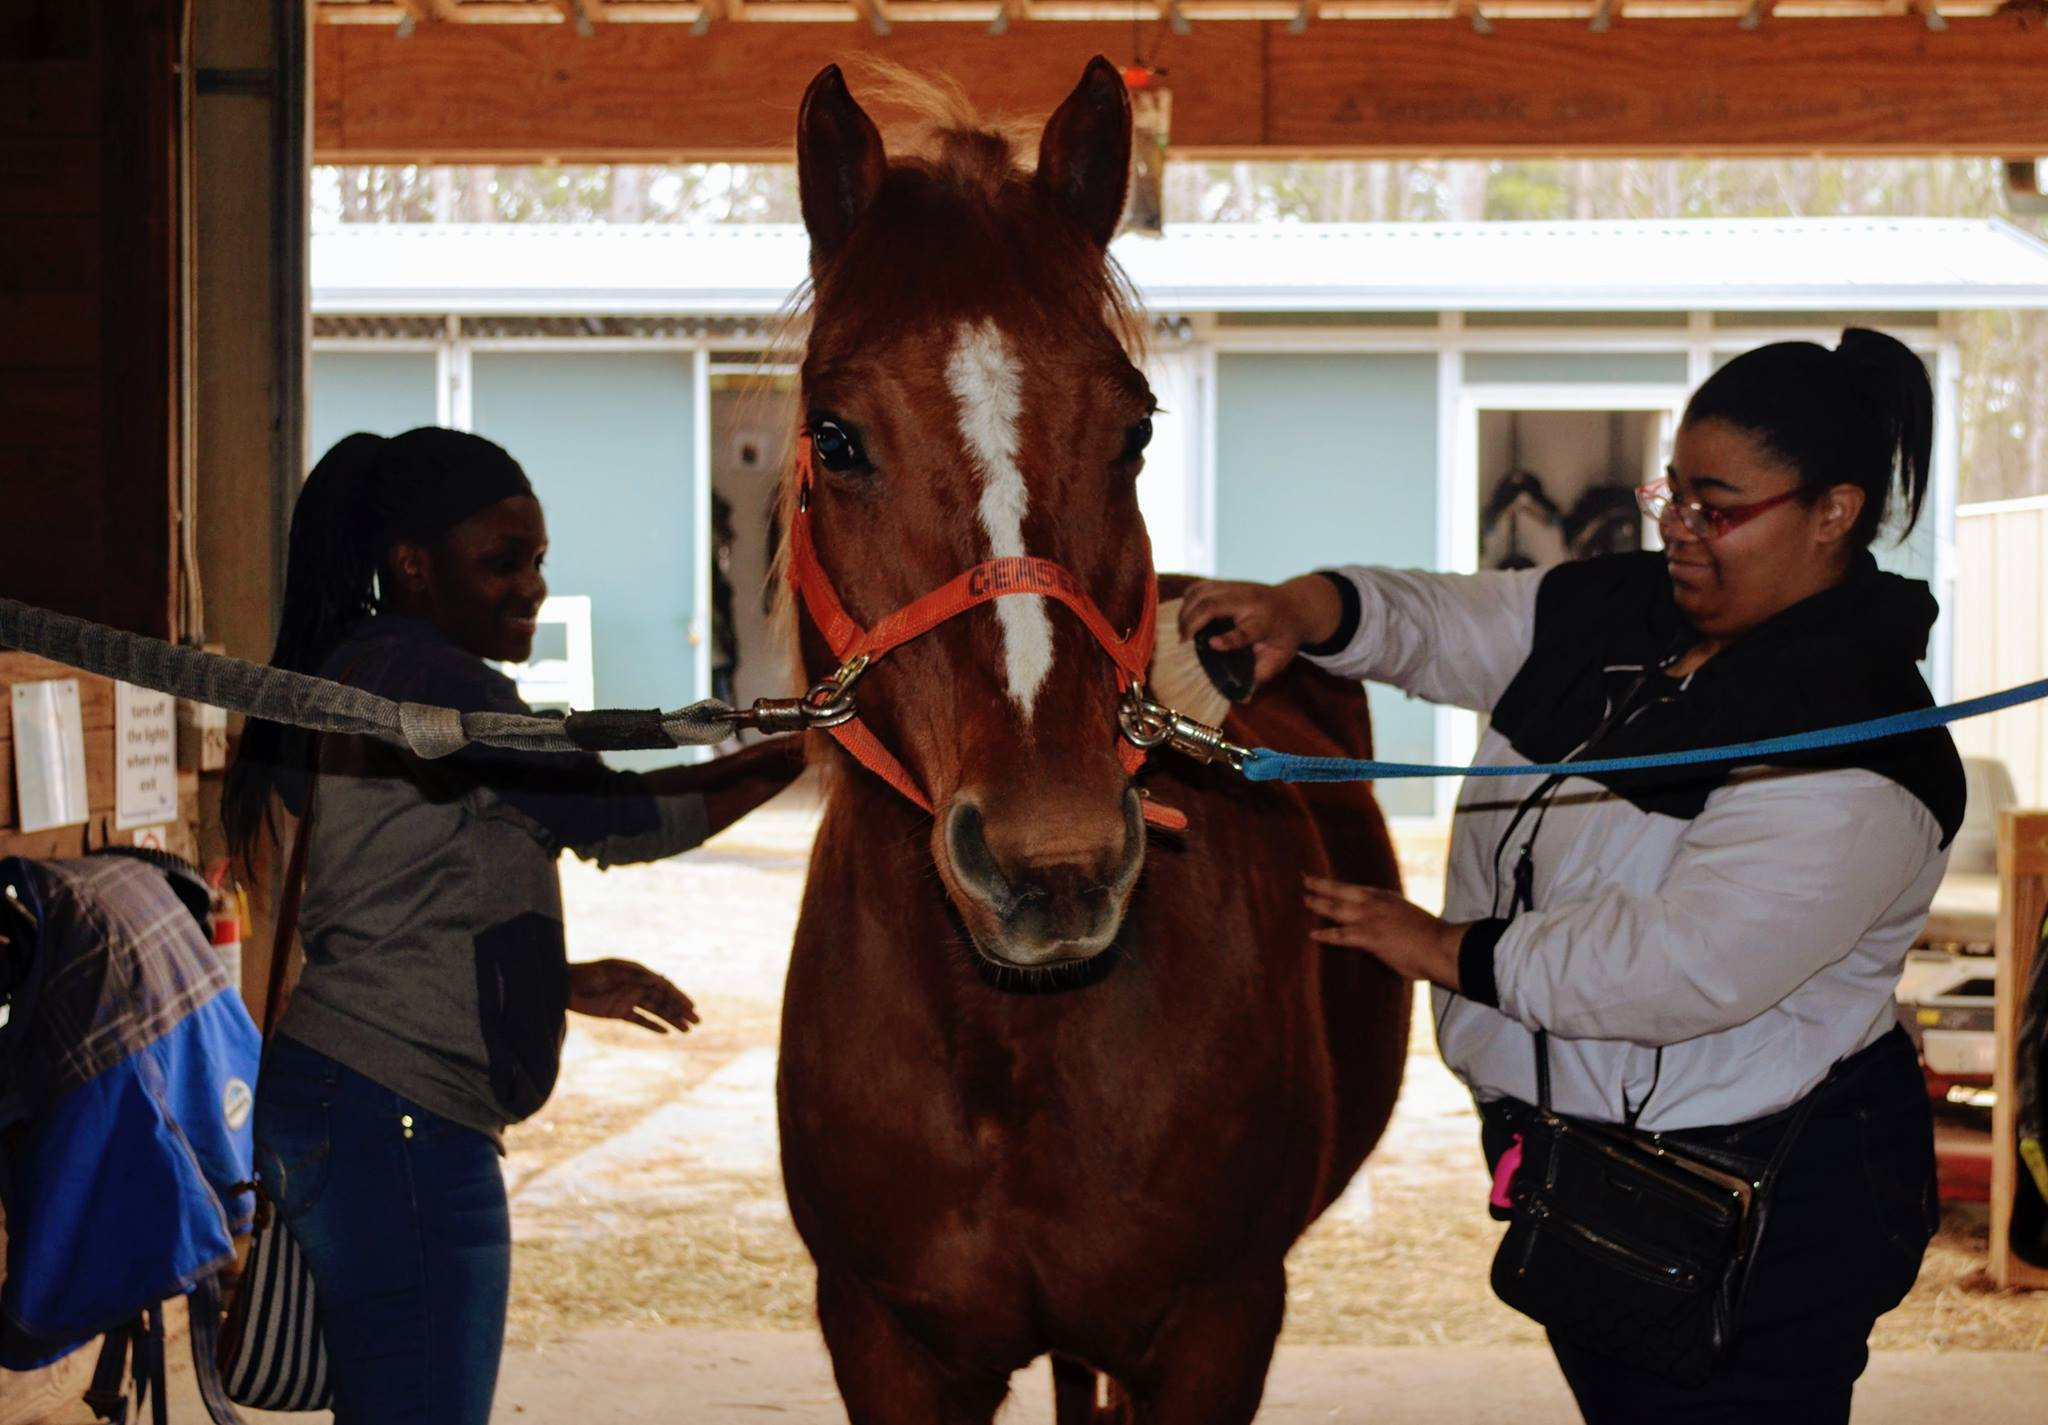 Students combing a horse in a stable